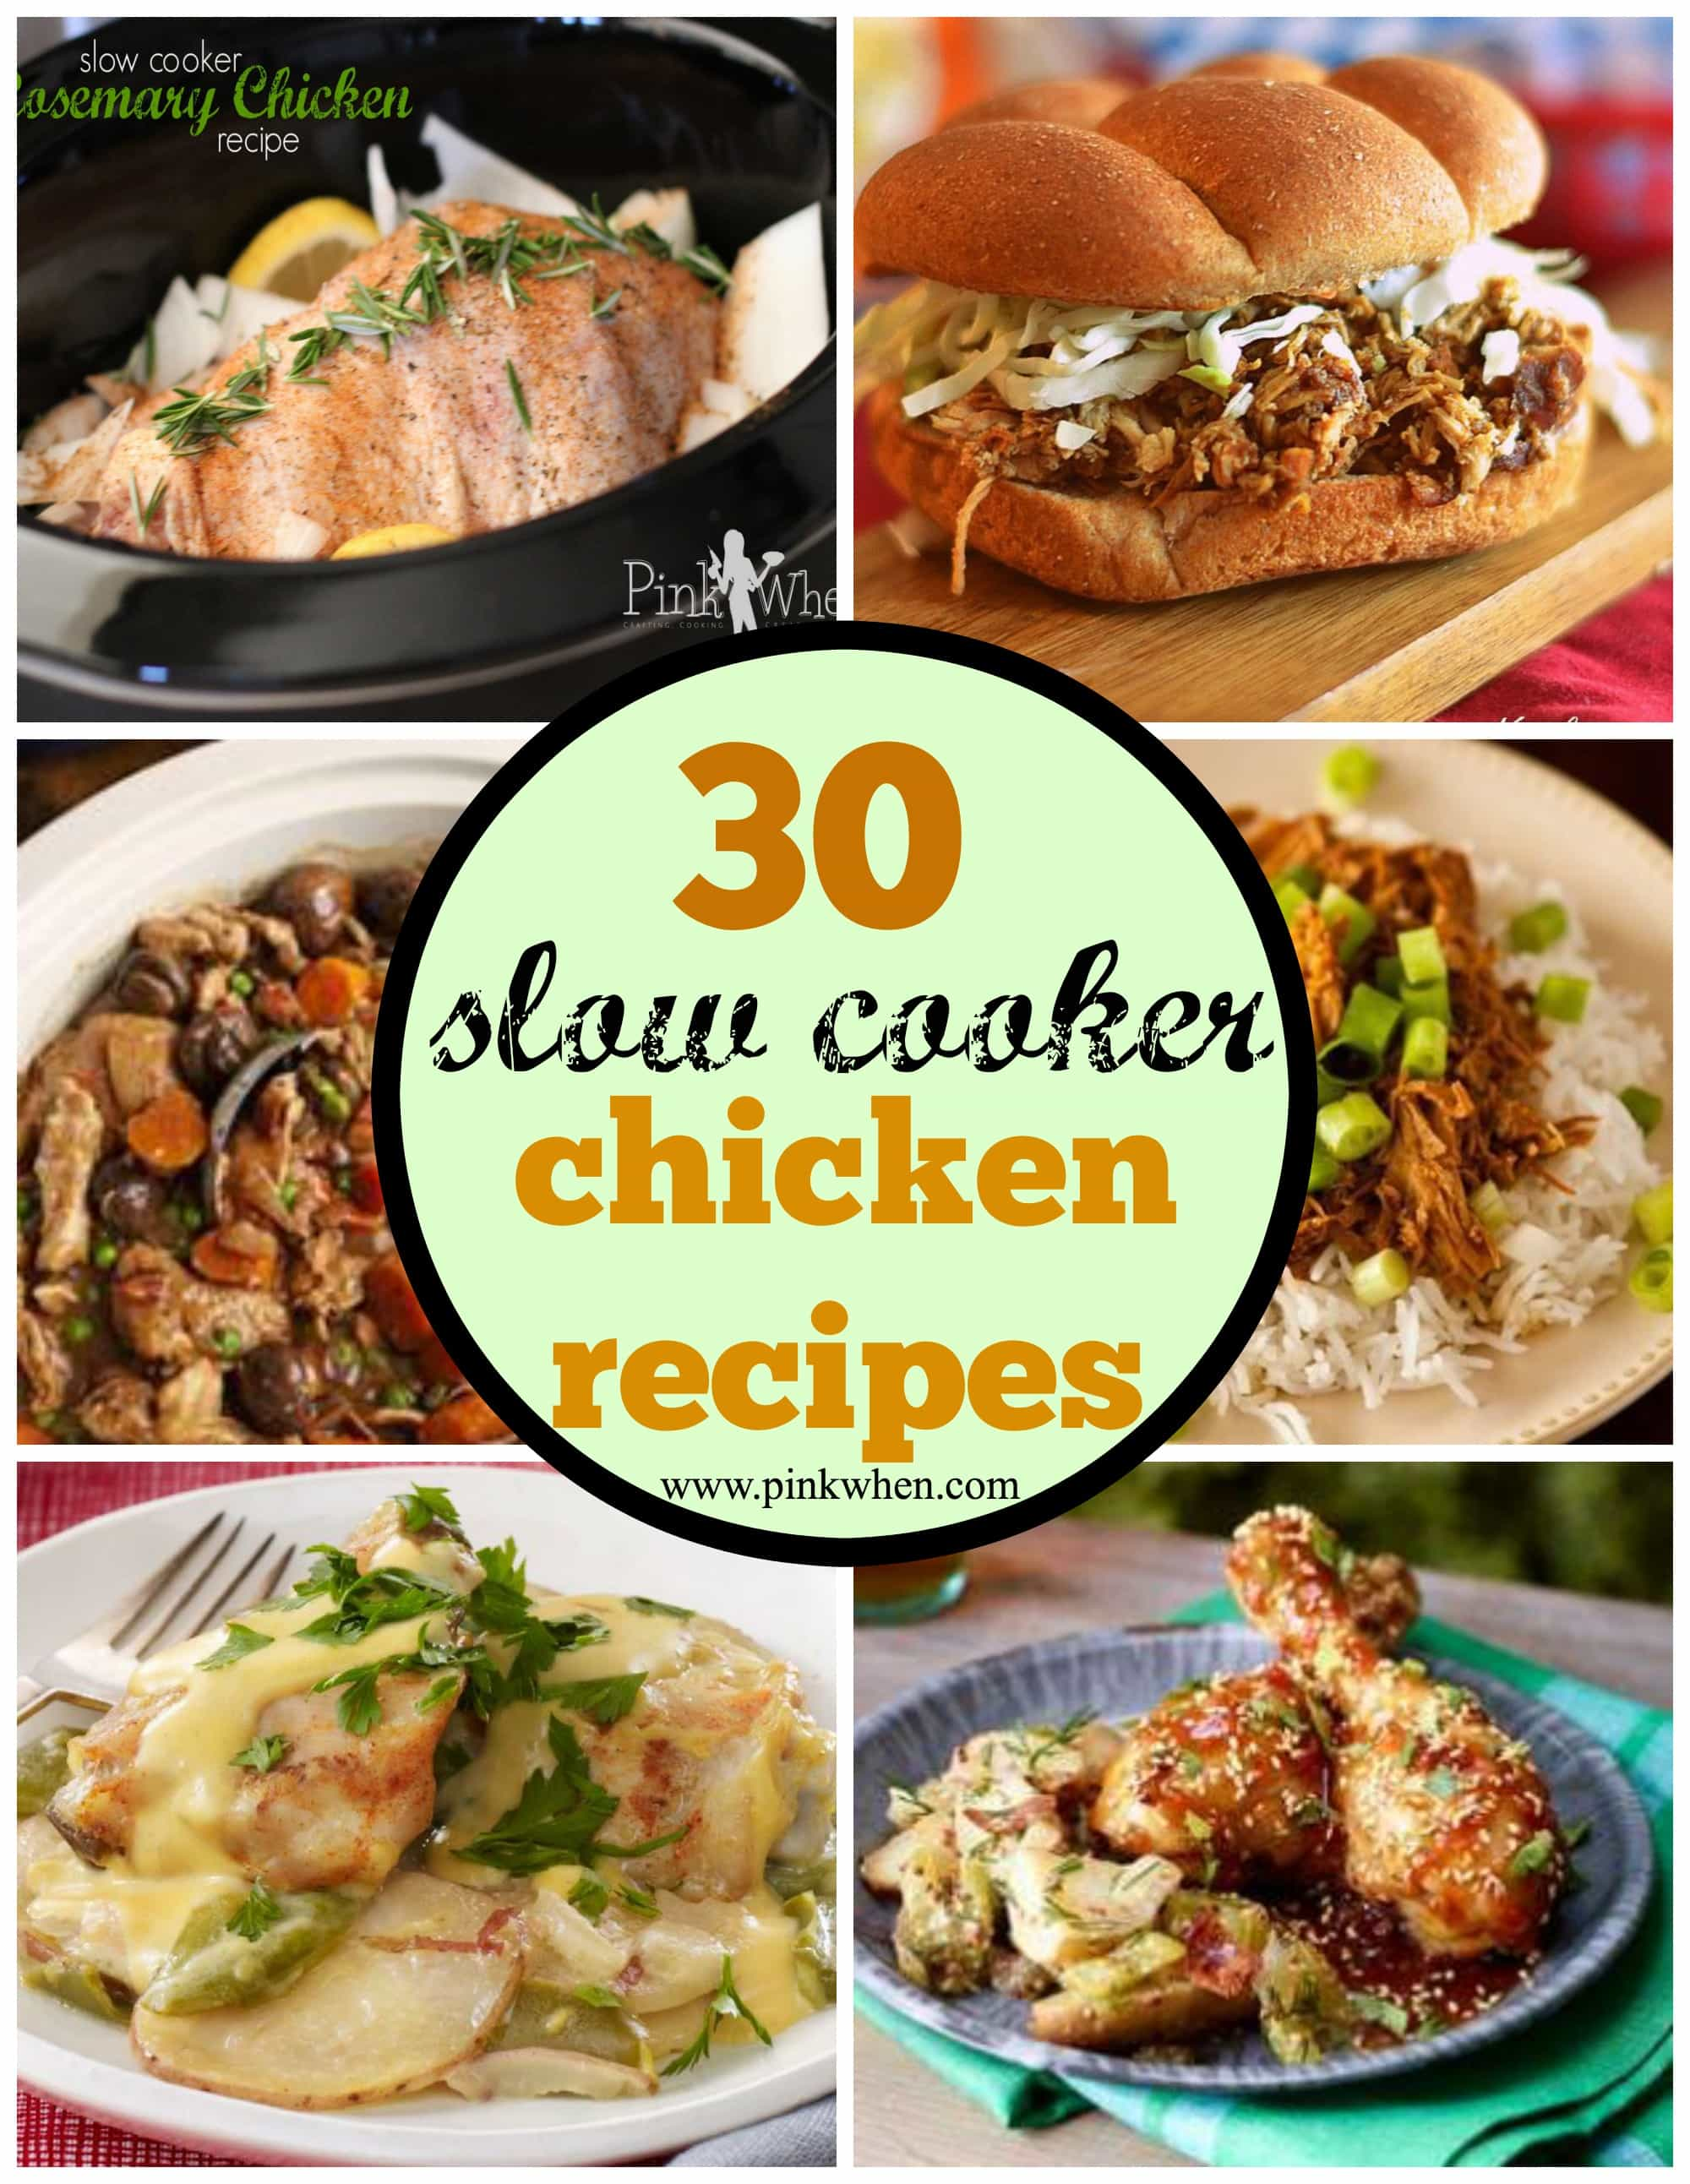 30 Slow Cooker Chicken Recipes via PinkWhen.com